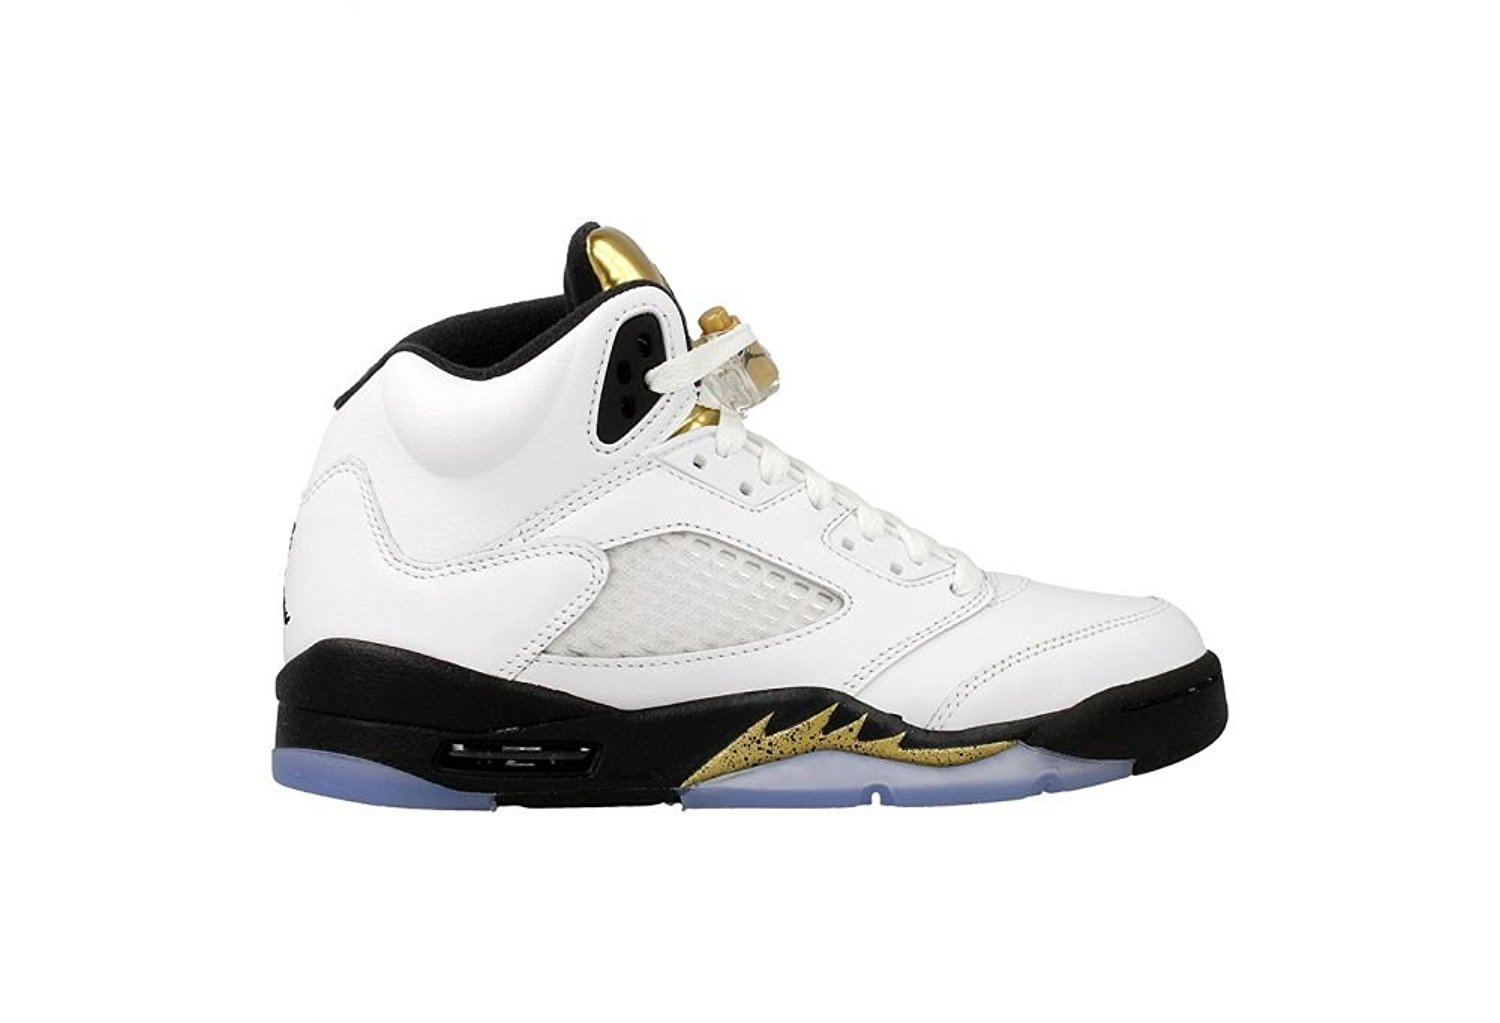 dca9bff11a5 Get Quotations · Nike Air Jordan 5 Retro BG LTD Olympic Gold Coin 2016  Basketball Sneaker